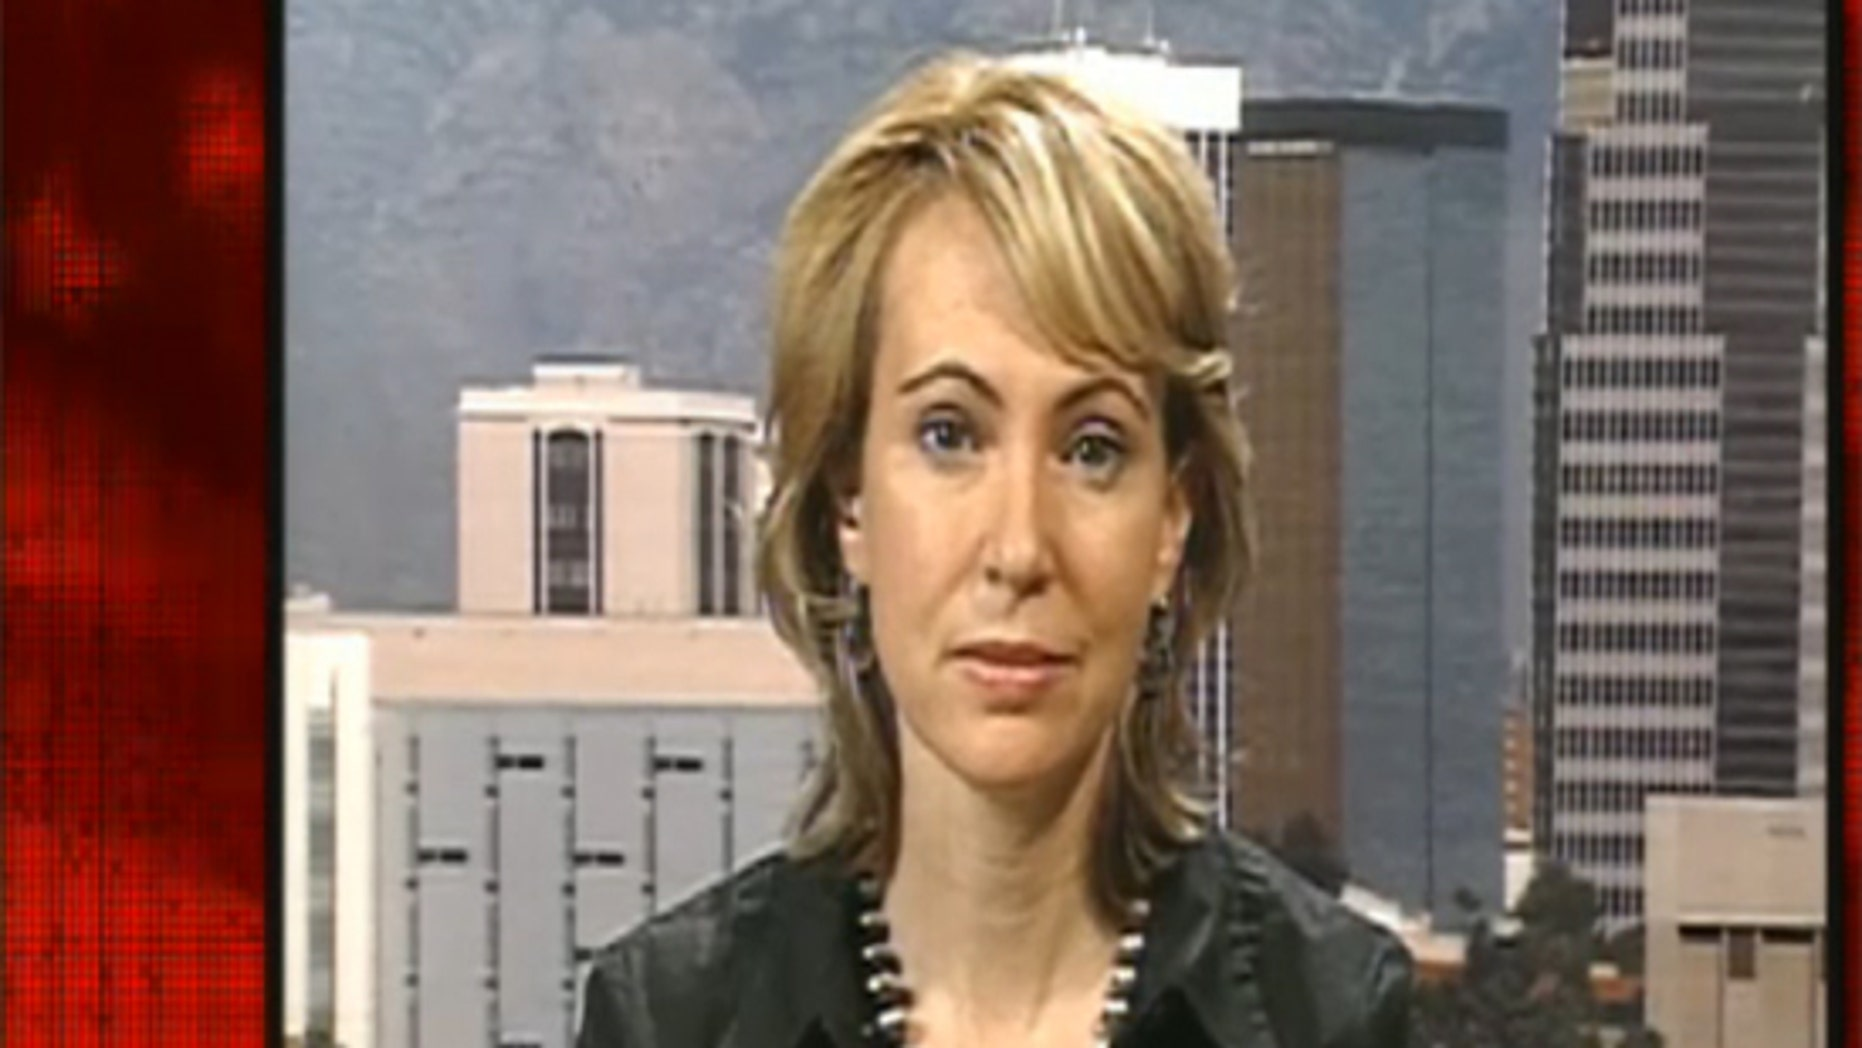 Democratic Rep. Gabrielle Giffords told Fox News on Saturday that she has information that the Department of Education and the U.S. Border Patrol canceled scheduled meetings in Arizona over the state's tough new immigration law, June 26, 2010. (FNC)